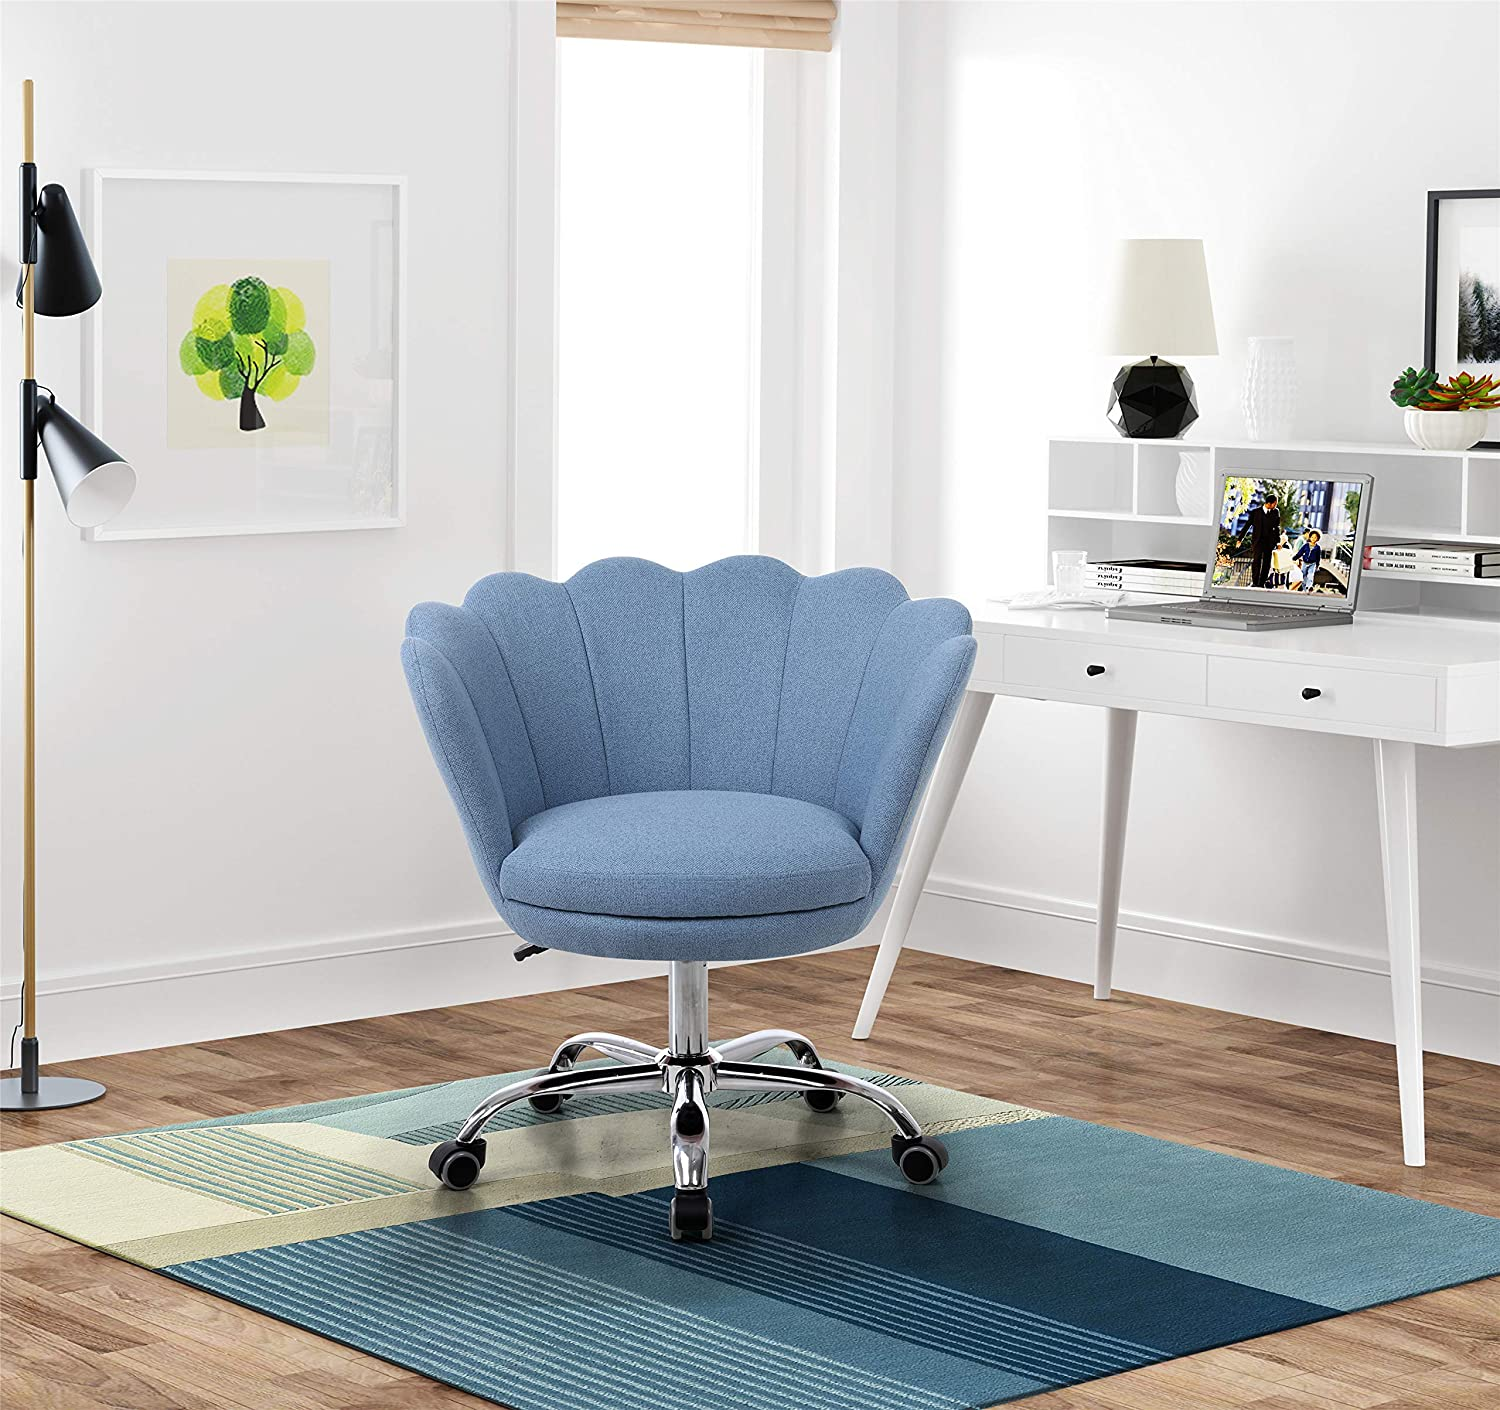 Artiron Swivel Shell Chair for Living Room Bedroom Modern Leisure Arm  Chair,Modern Fabric Vanity Chair with Wheels (Blue)